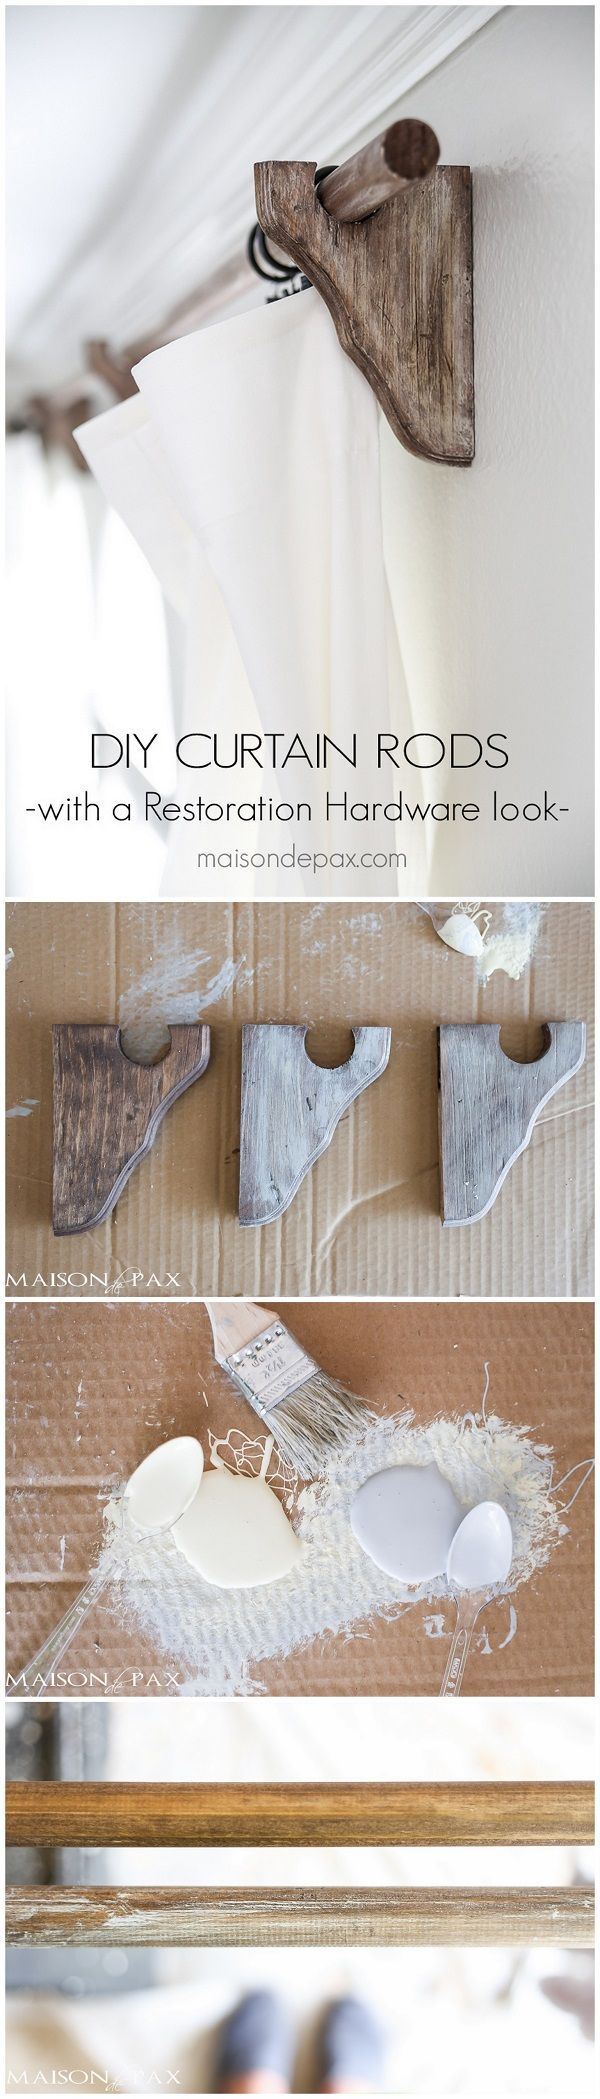 Check out this easy idea on how to make your own #DIY #farmhouse style curtain rods #wood #homedecor #project @istandarddesign